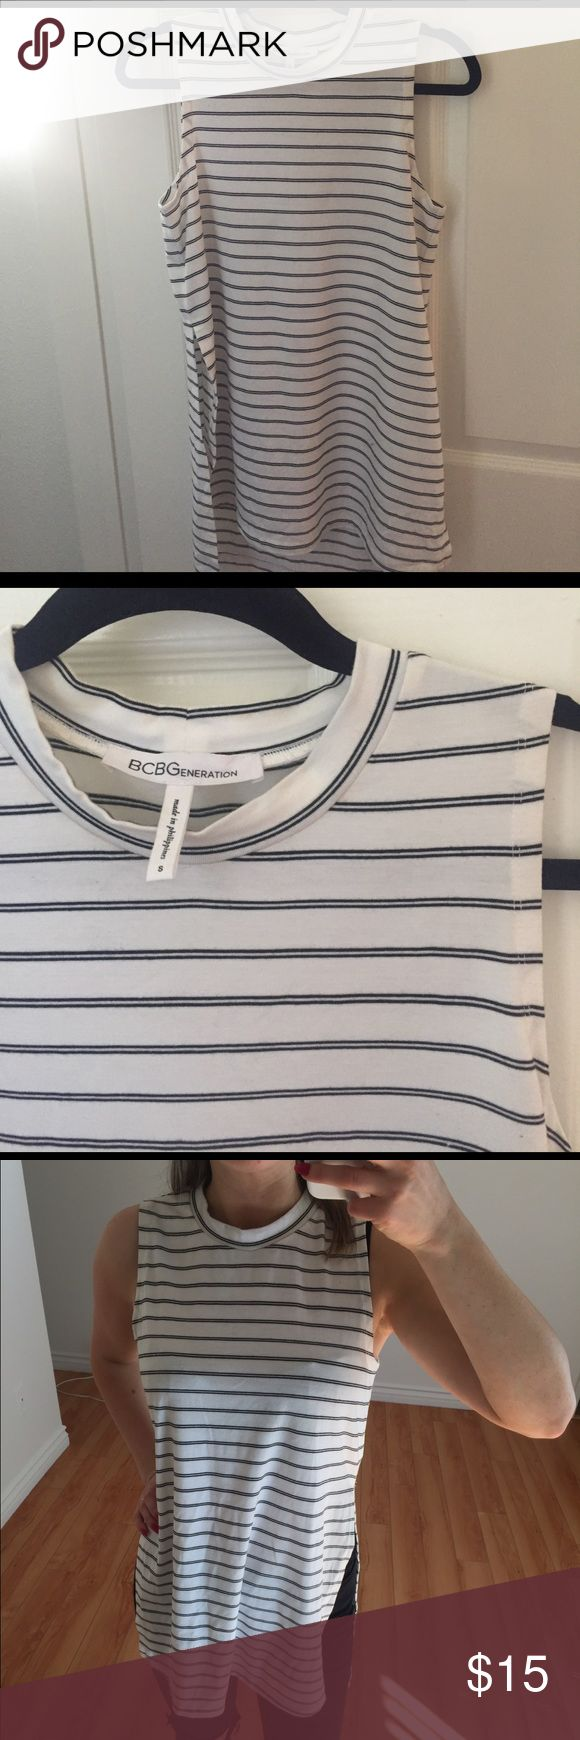 BCBG generation white striped tank White mock-turtleneck striped BCBGeneration tank top. Size small. This is a long tank with a high slit in the side! It's perfect for transitioning into spring/summer BCBGeneration Tops Tank Tops